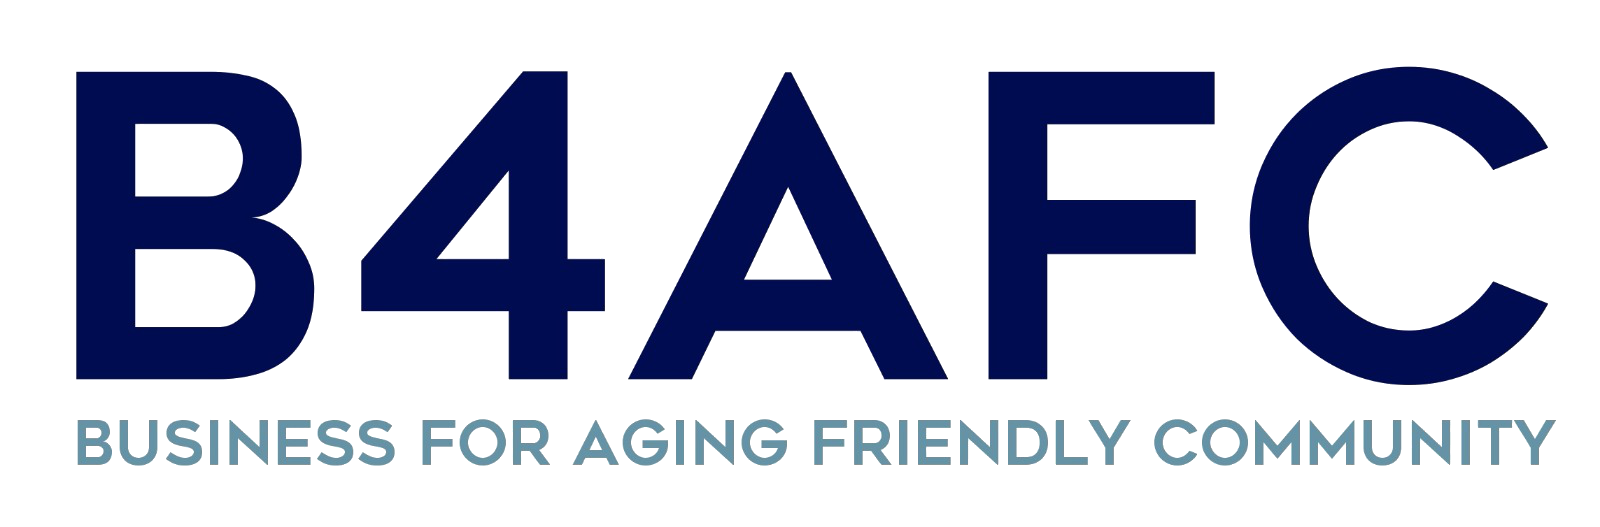 Business For Aging Friendly Community